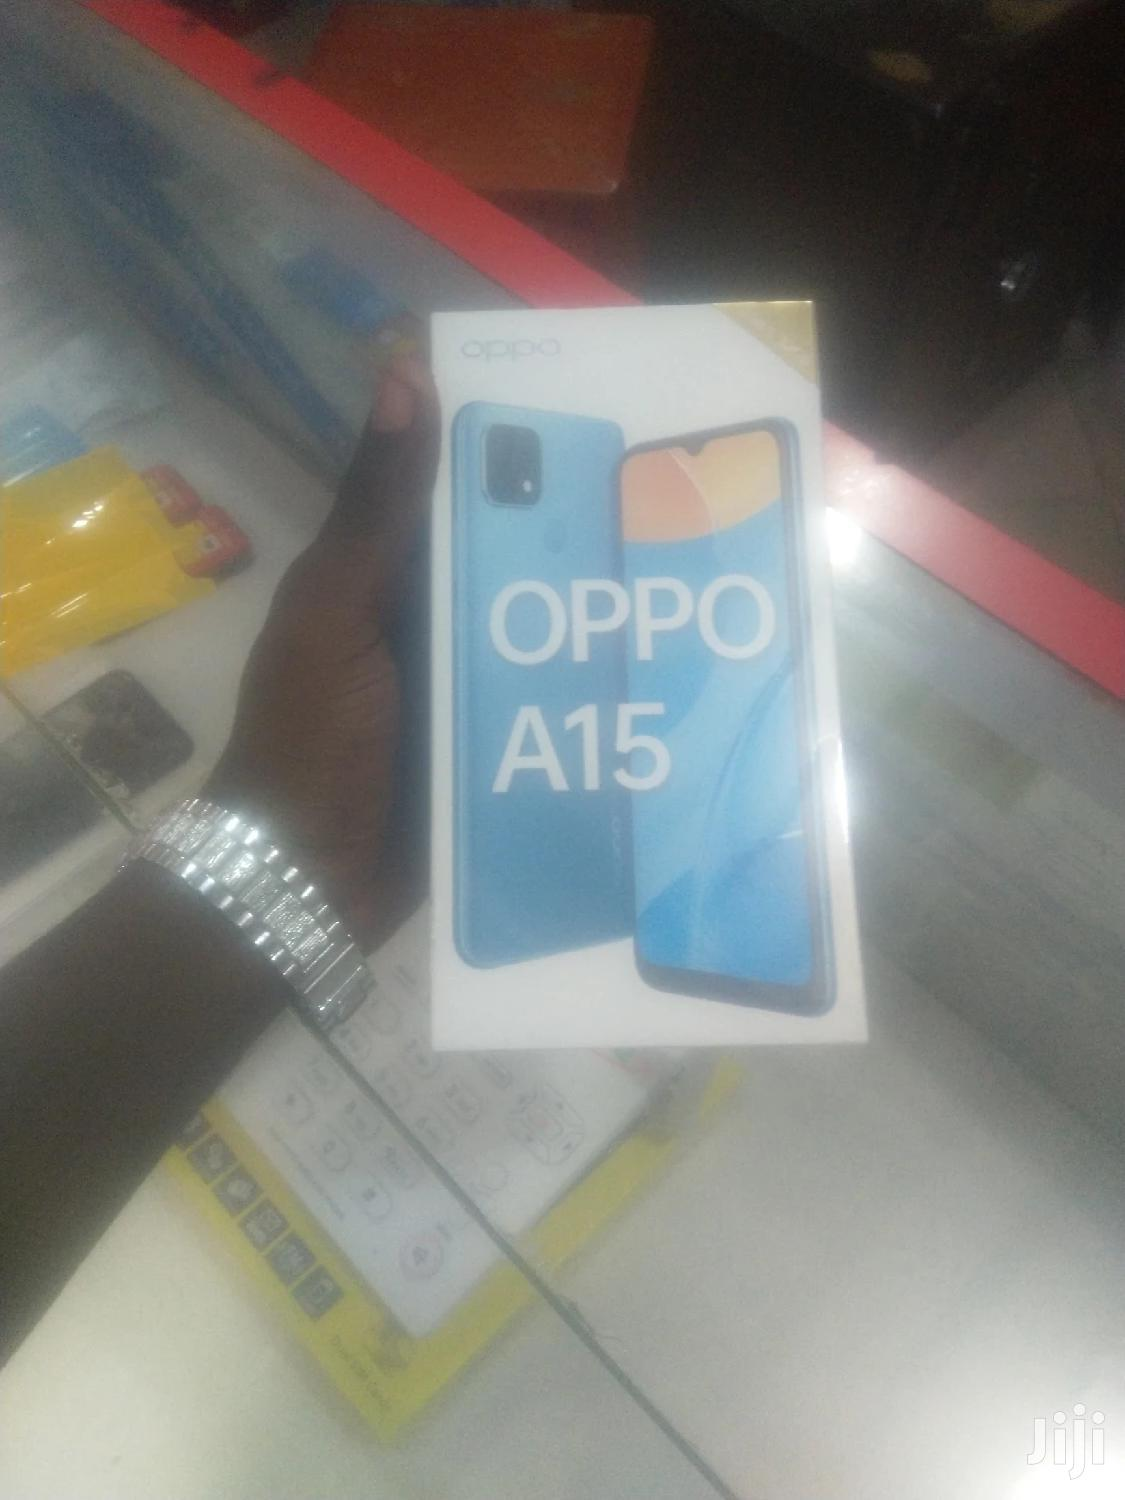 New Oppo A15 32GB Black | Mobile Phones for sale in Ilala, Dar es Salaam, Tanzania